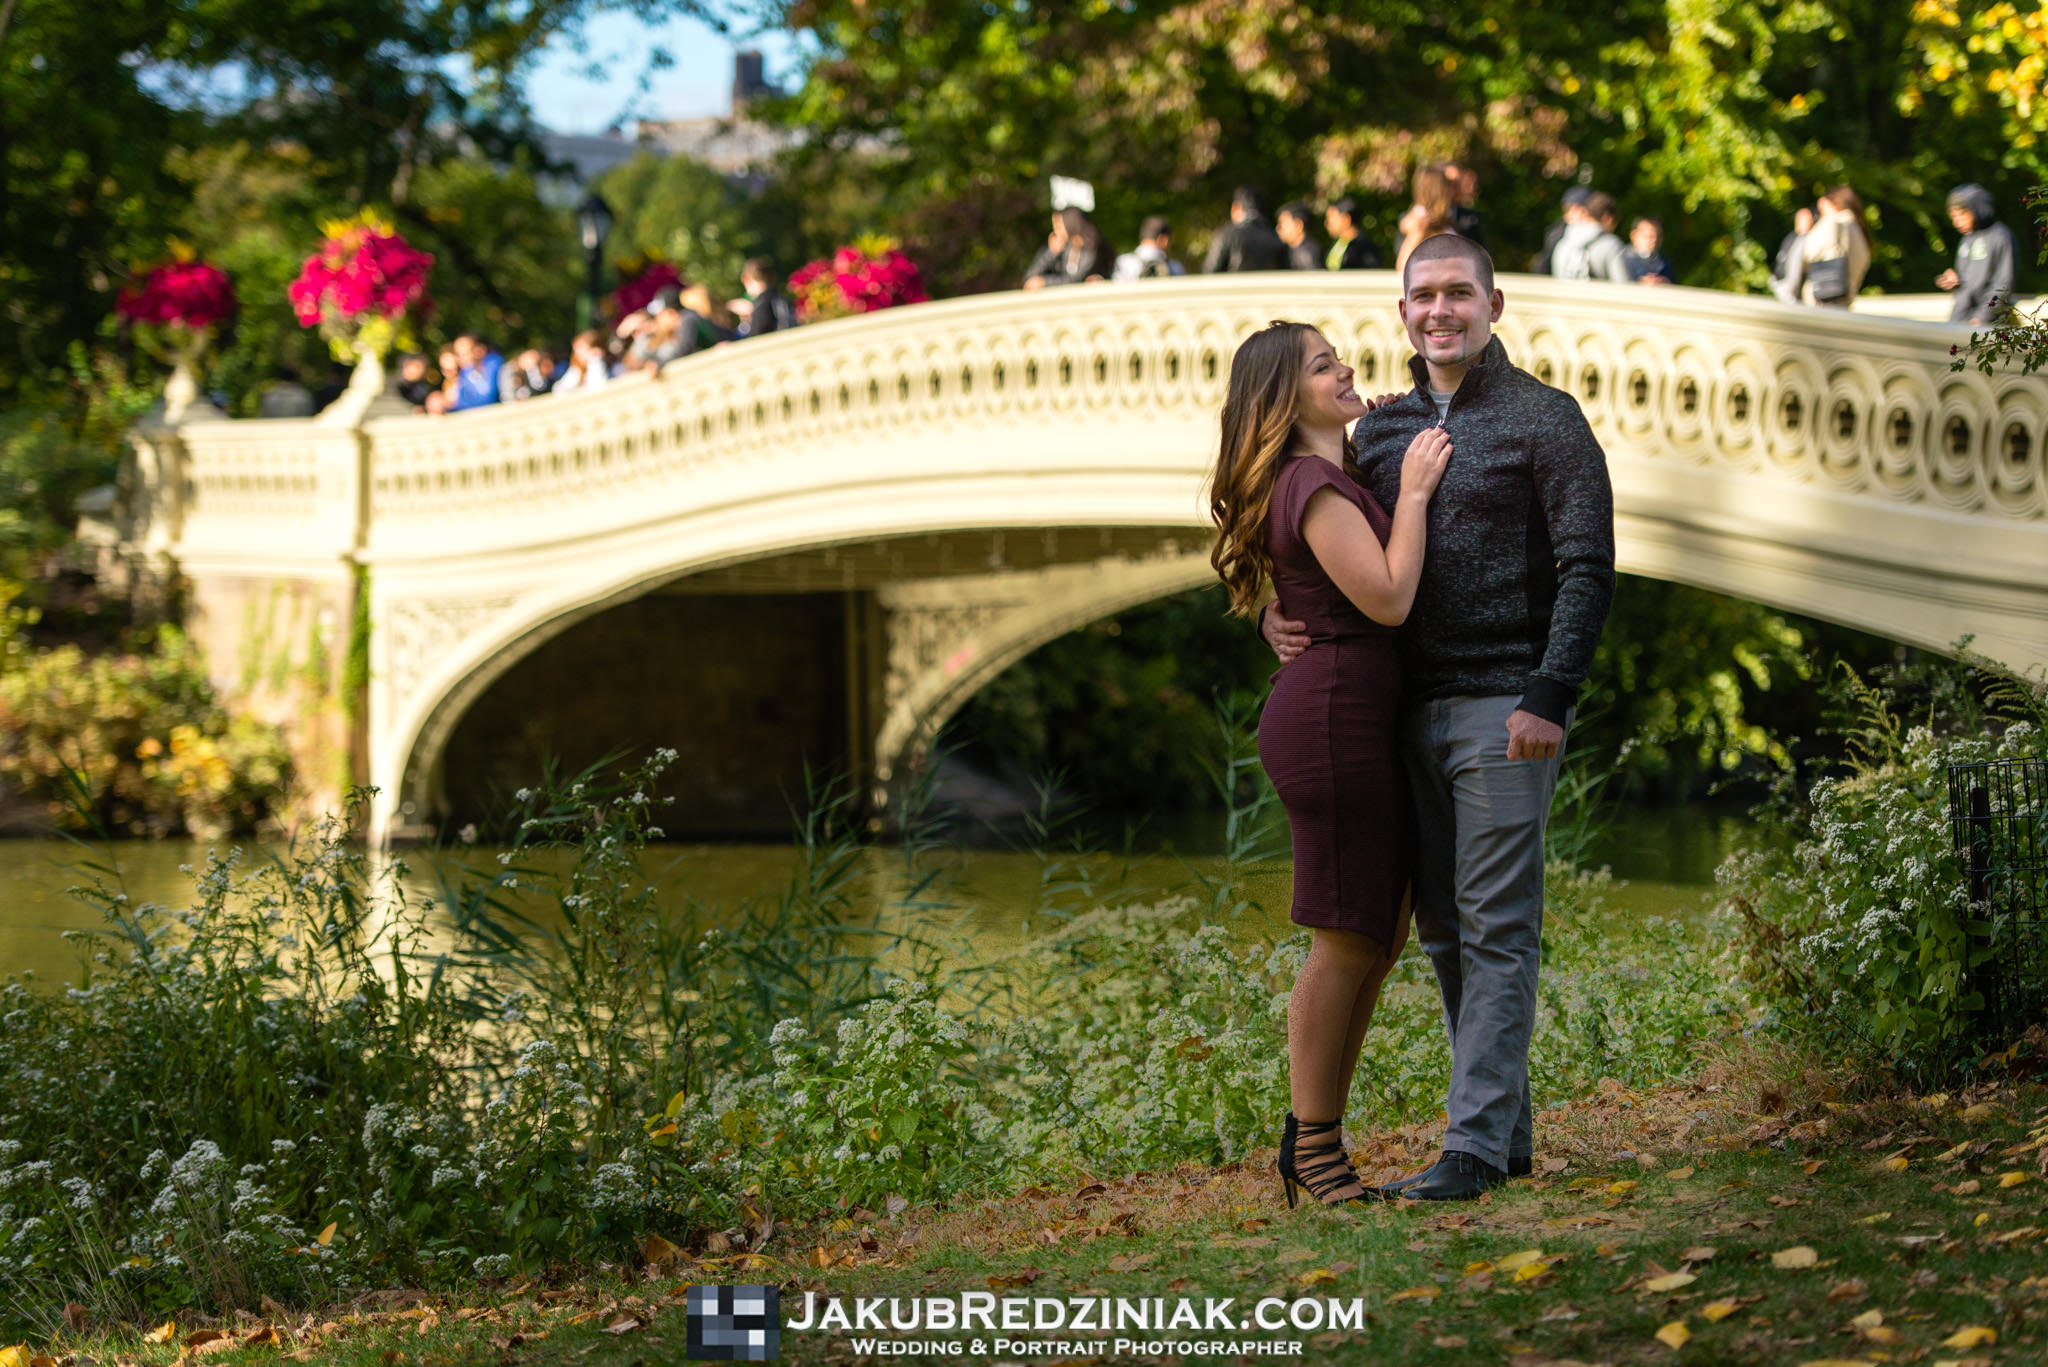 couple engagement session in front of bow bridge in central park new york city